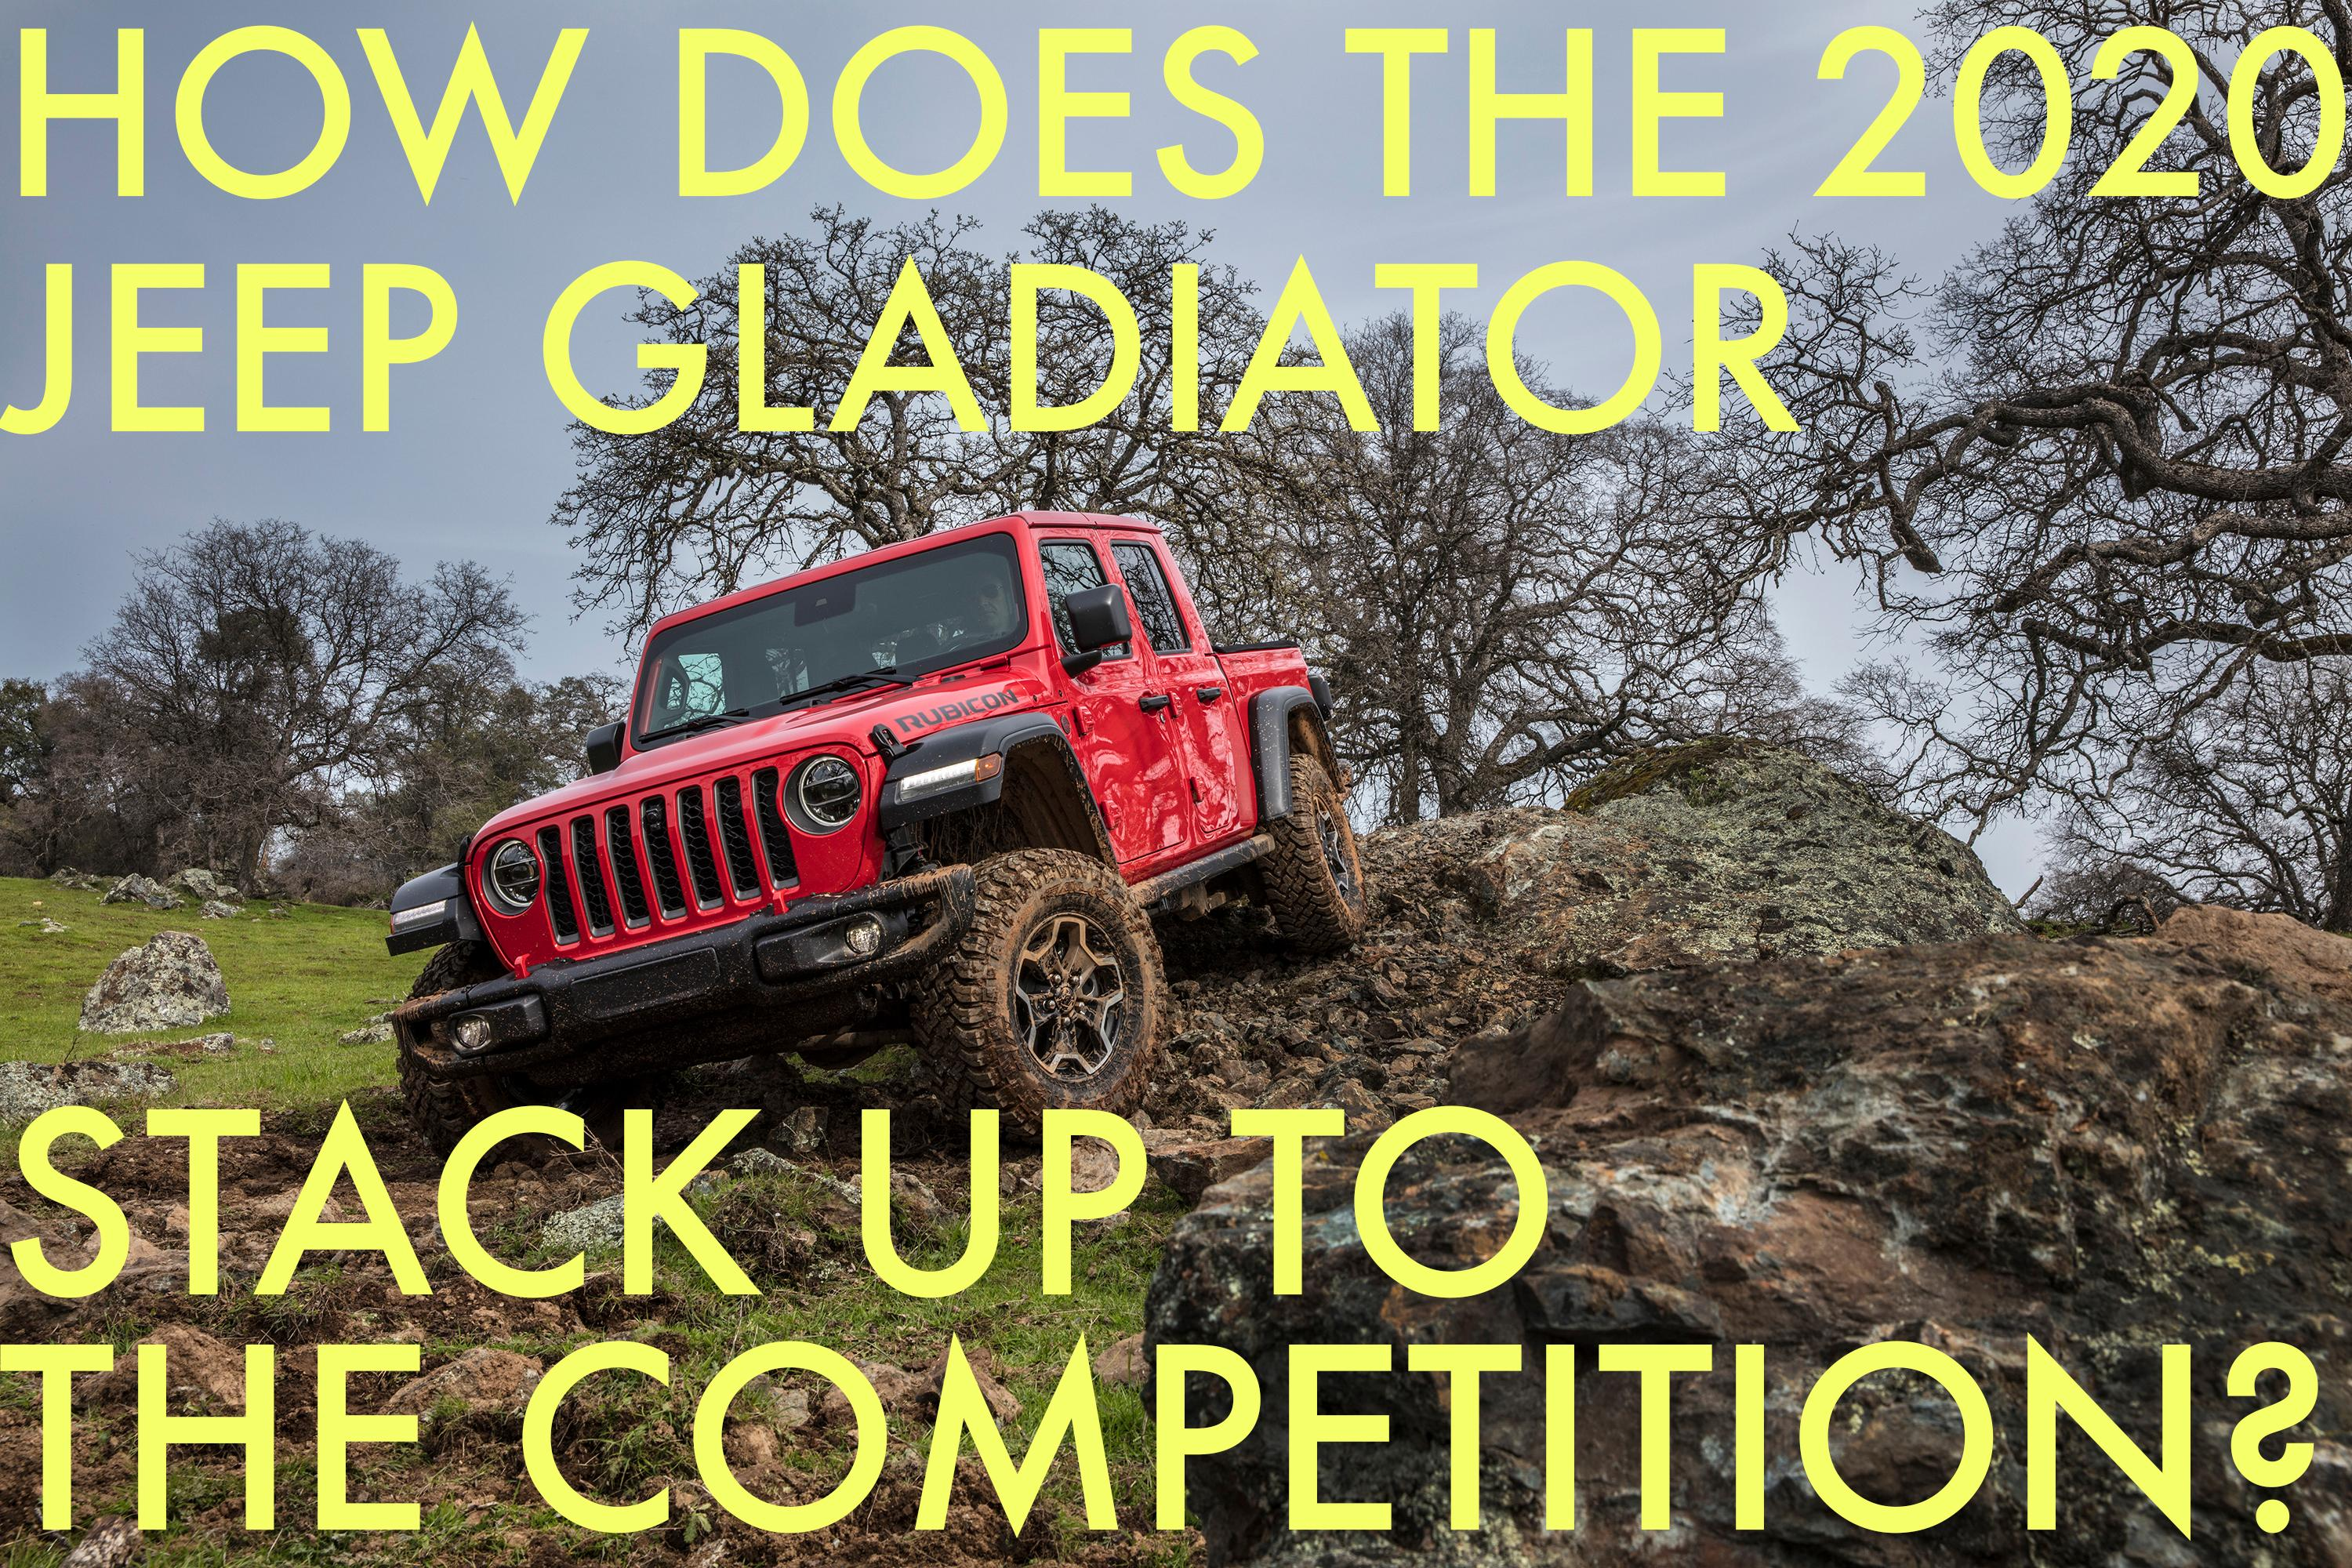 2020 Jeep Gladiator Reviews | Price, specs, features and